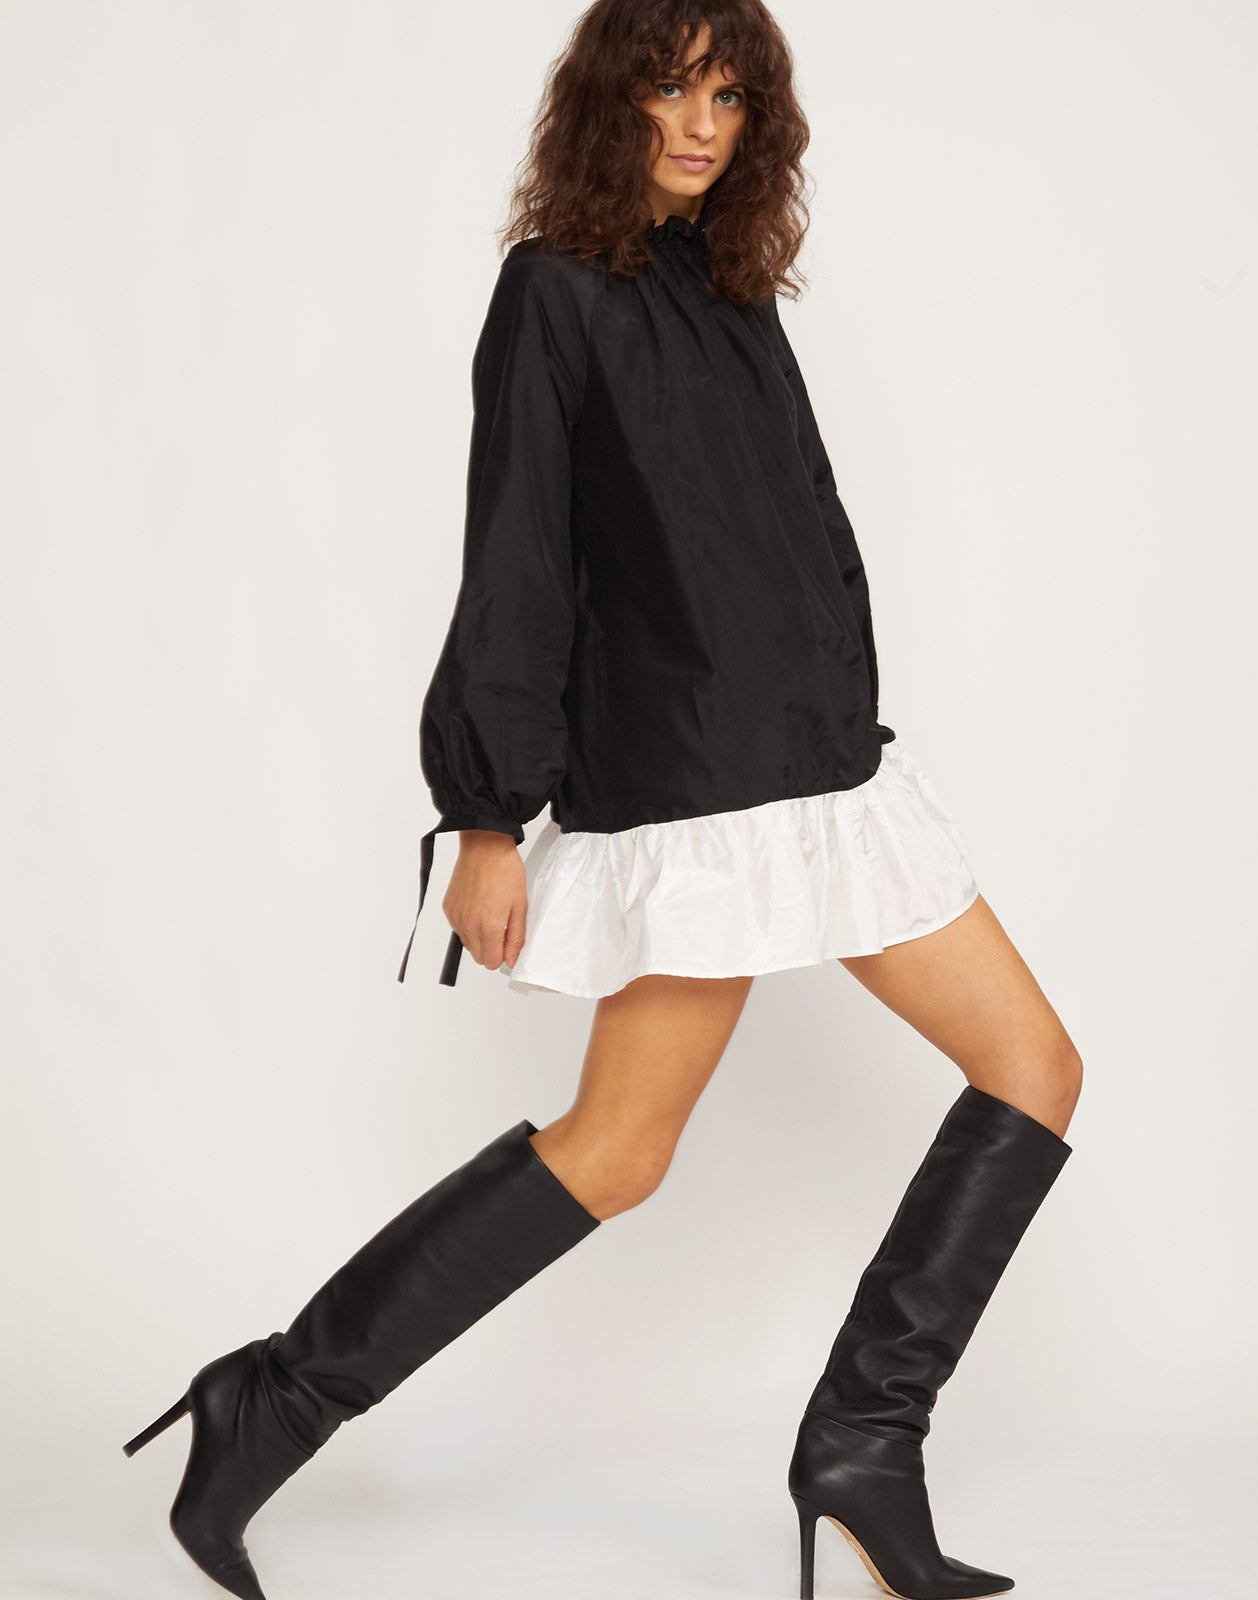 Side view of the Gisele black and white taffeta bell sleeve dress.